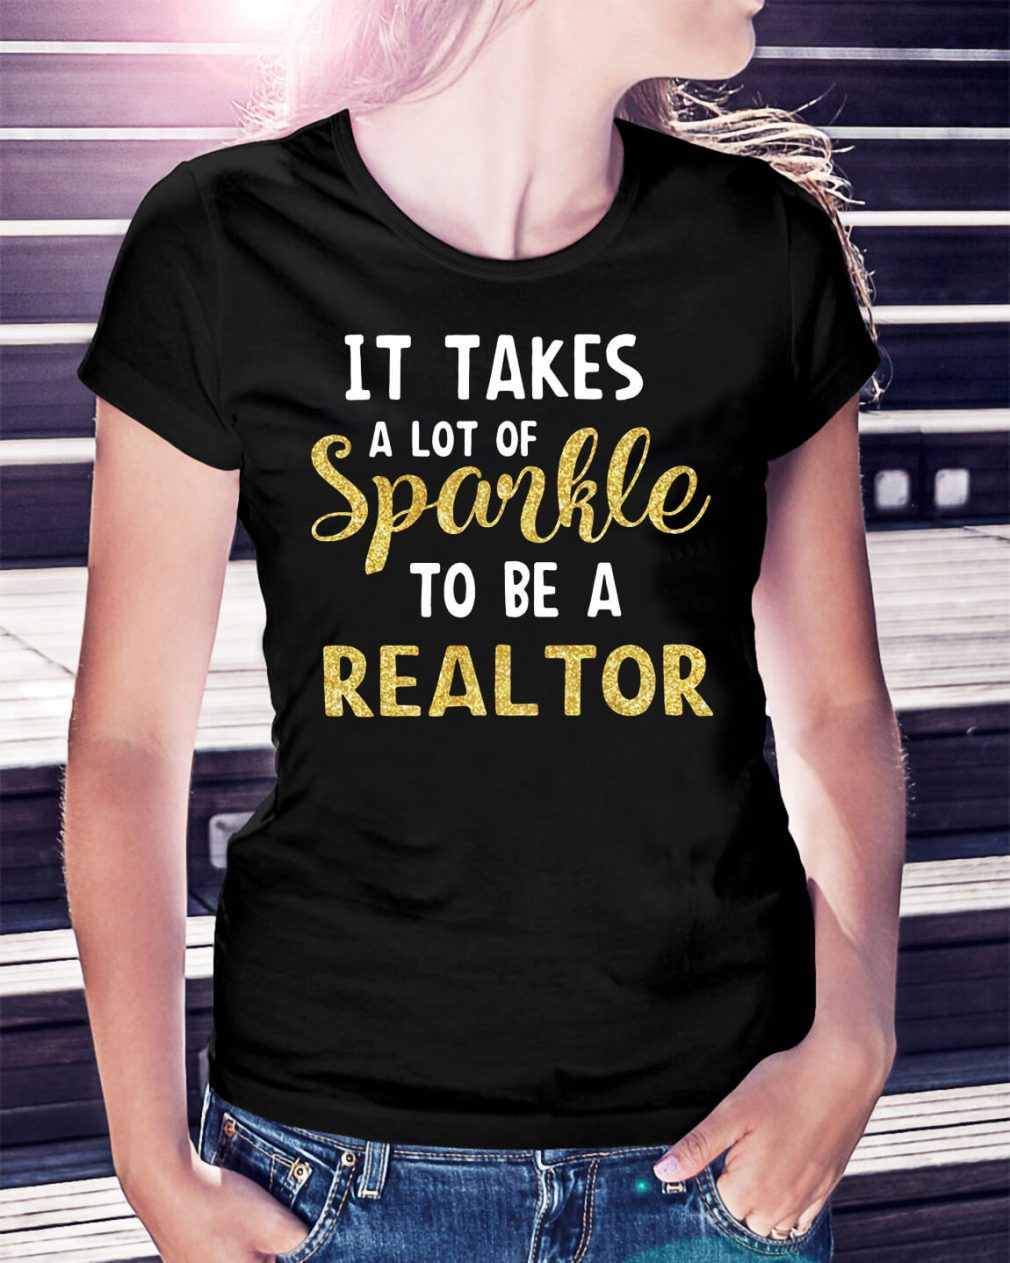 It takes a lot of sparkle to be a realtor shirt